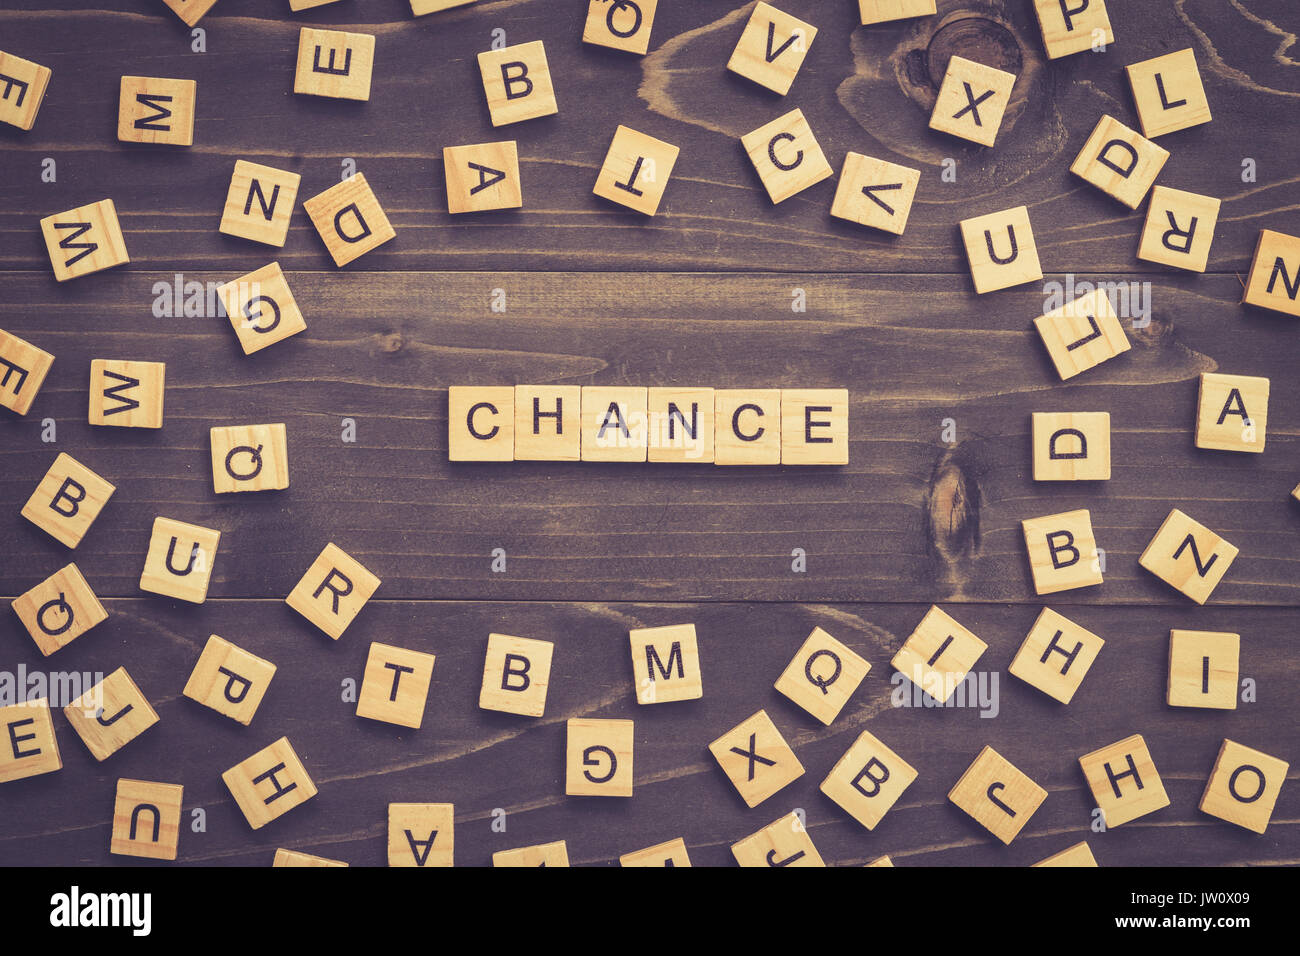 Chance word wood block on table for business concept. - Stock Image